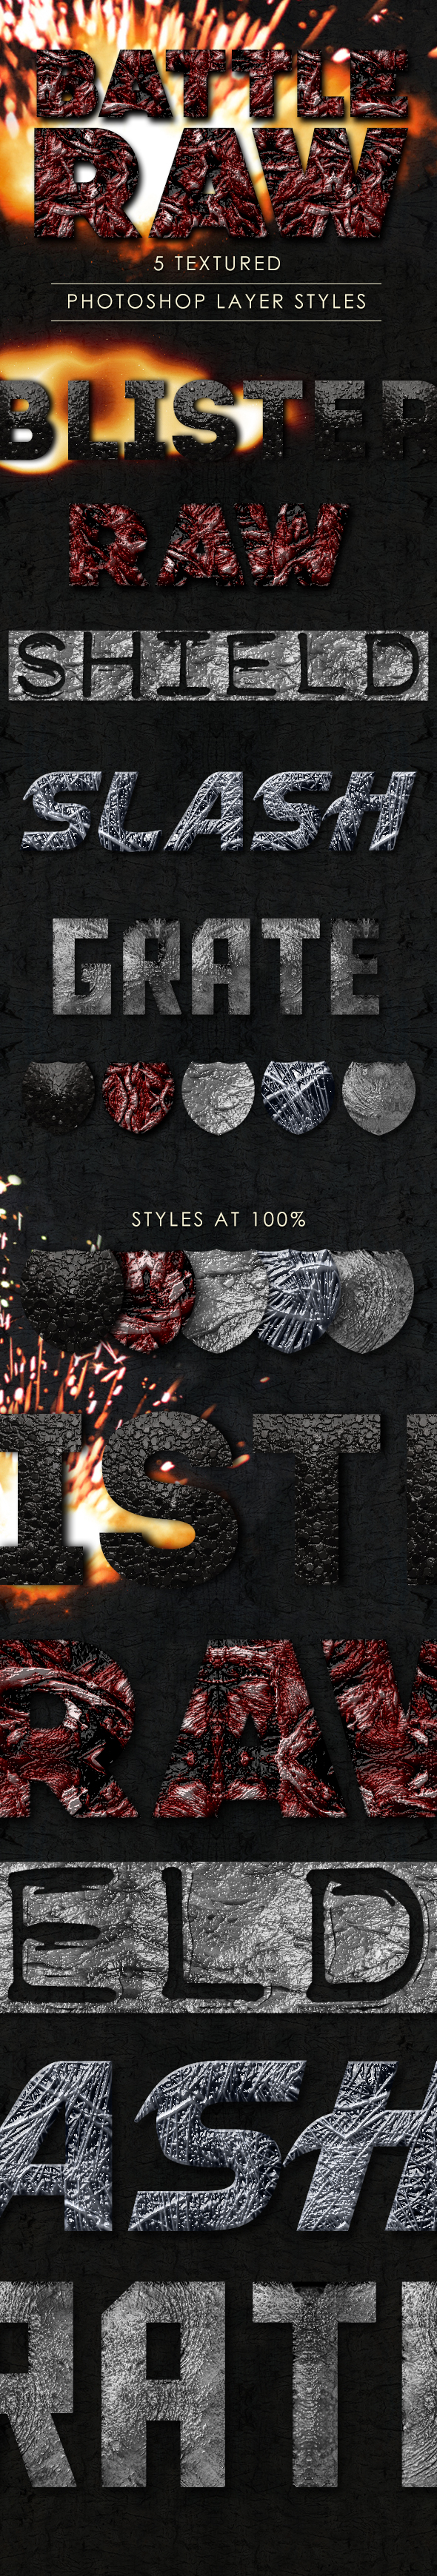 Battle Raw Photoshop Layer Styles - Text Effects Styles